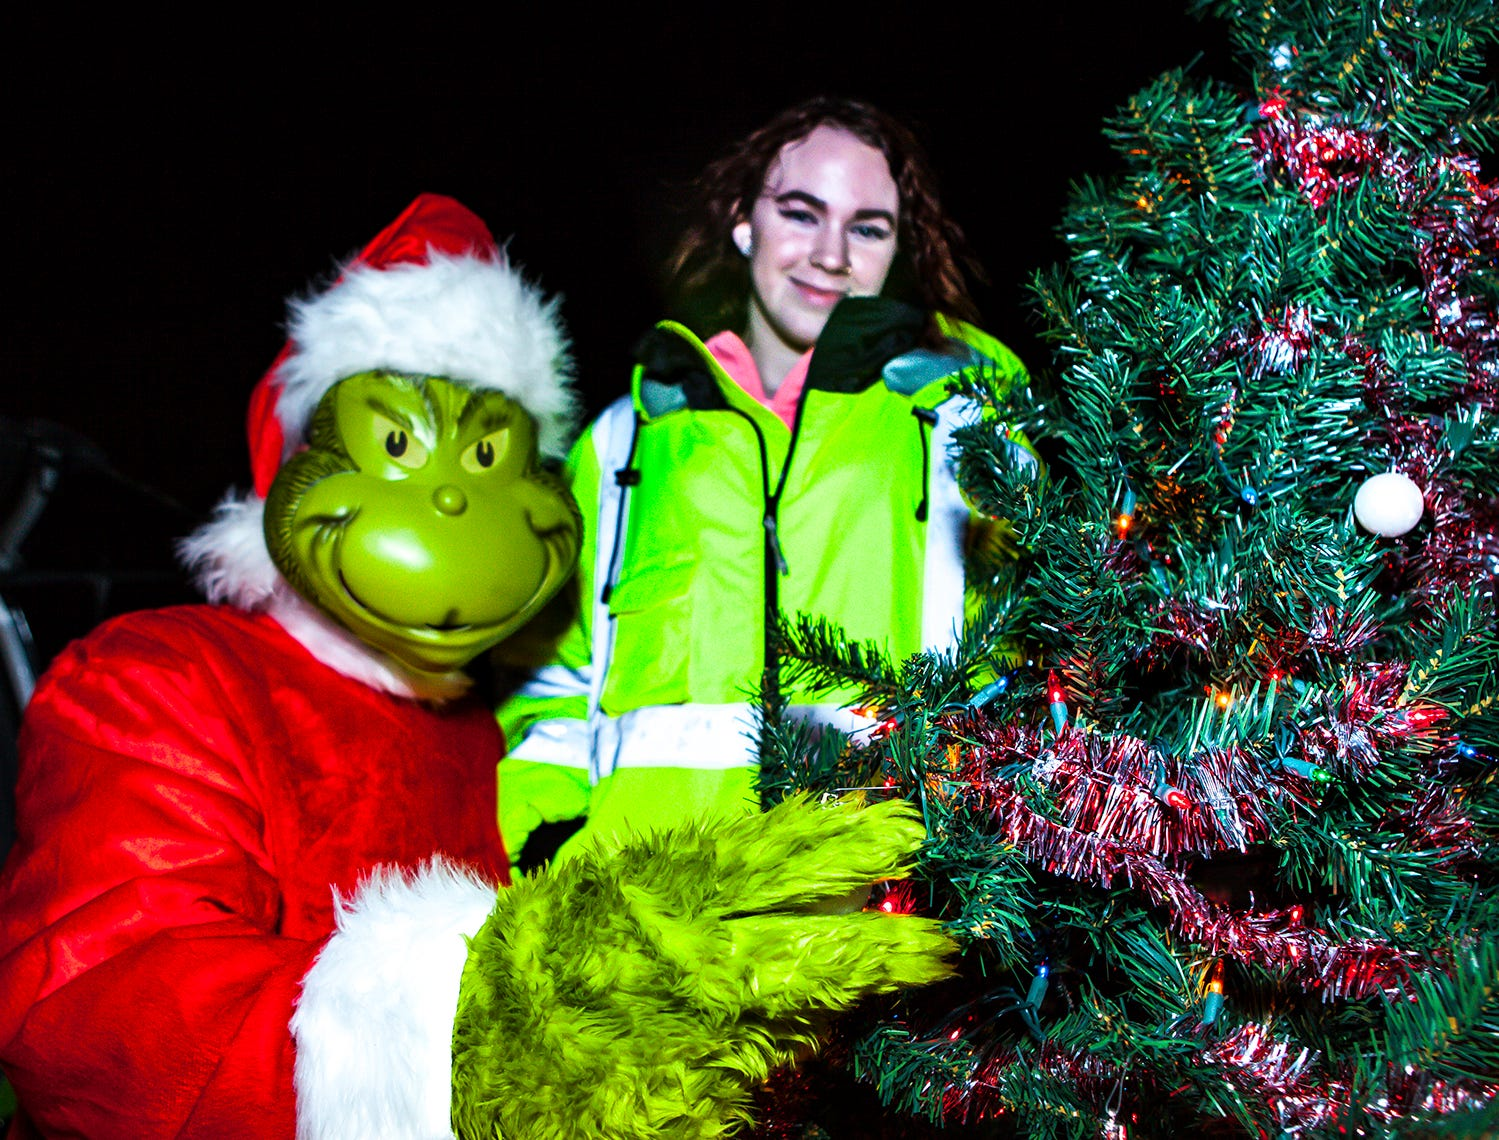 The Grinch (aka Chris Buck, a Box 100 volunteer) and daughter Ashlyn Buck at La Vergne's 2018 Christmas Parade of Lights, held Saturday, Dec. 1, 2018.